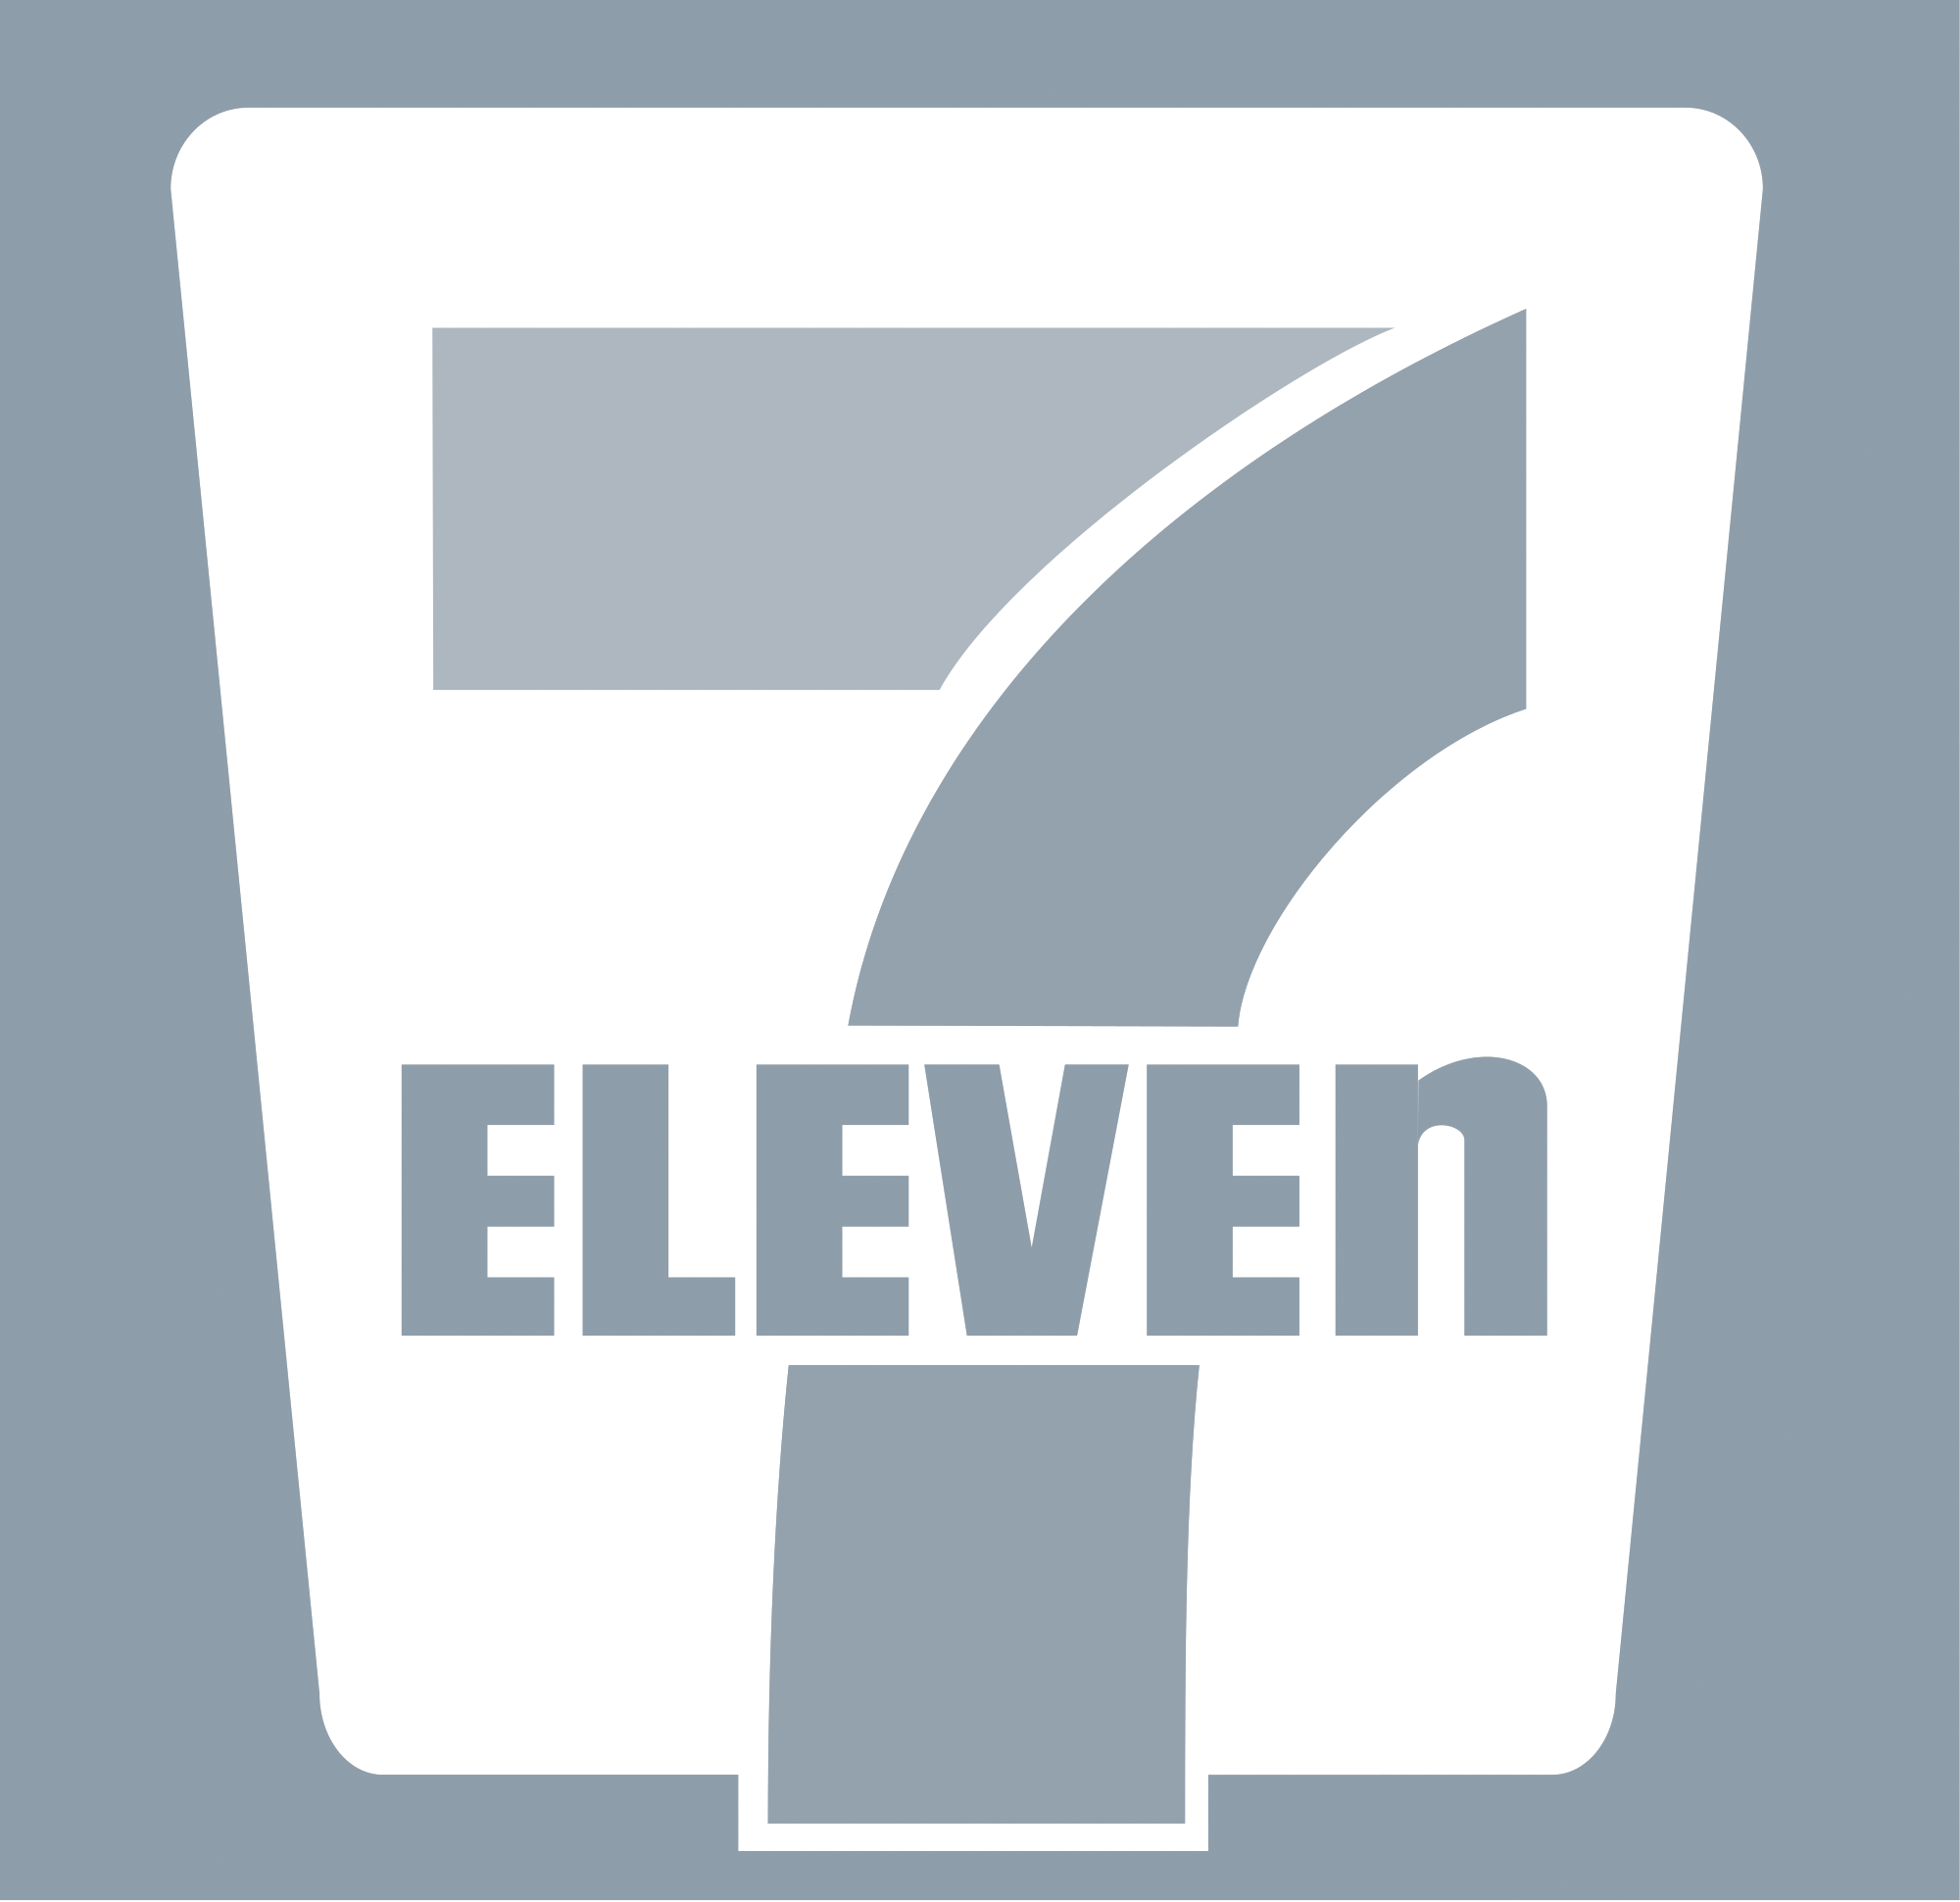 7-eleven-brand-vre-duo.png